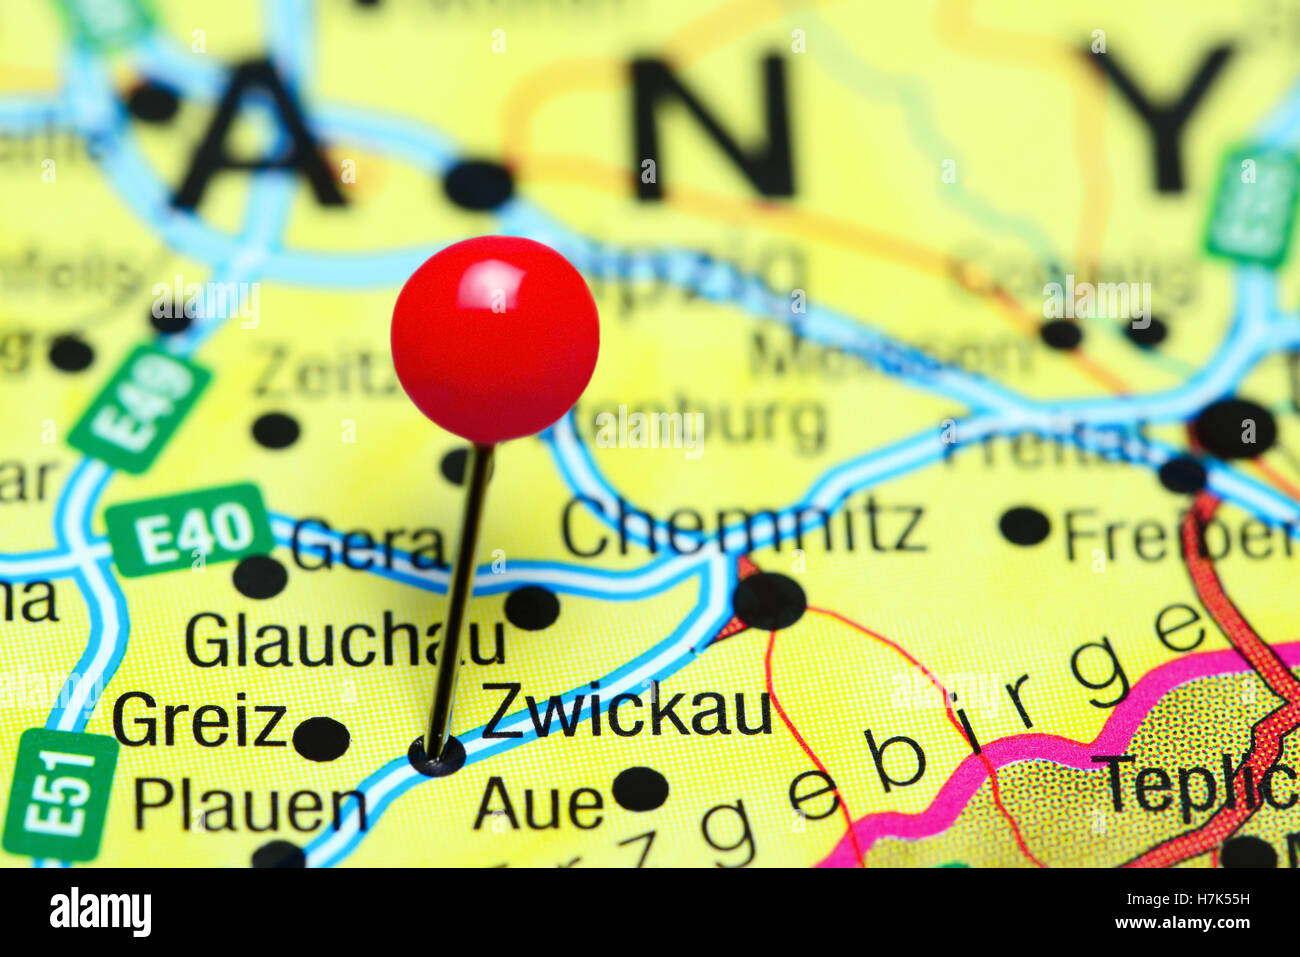 Zwickau pinned on a map of Germany Stock Photo Royalty Free Image